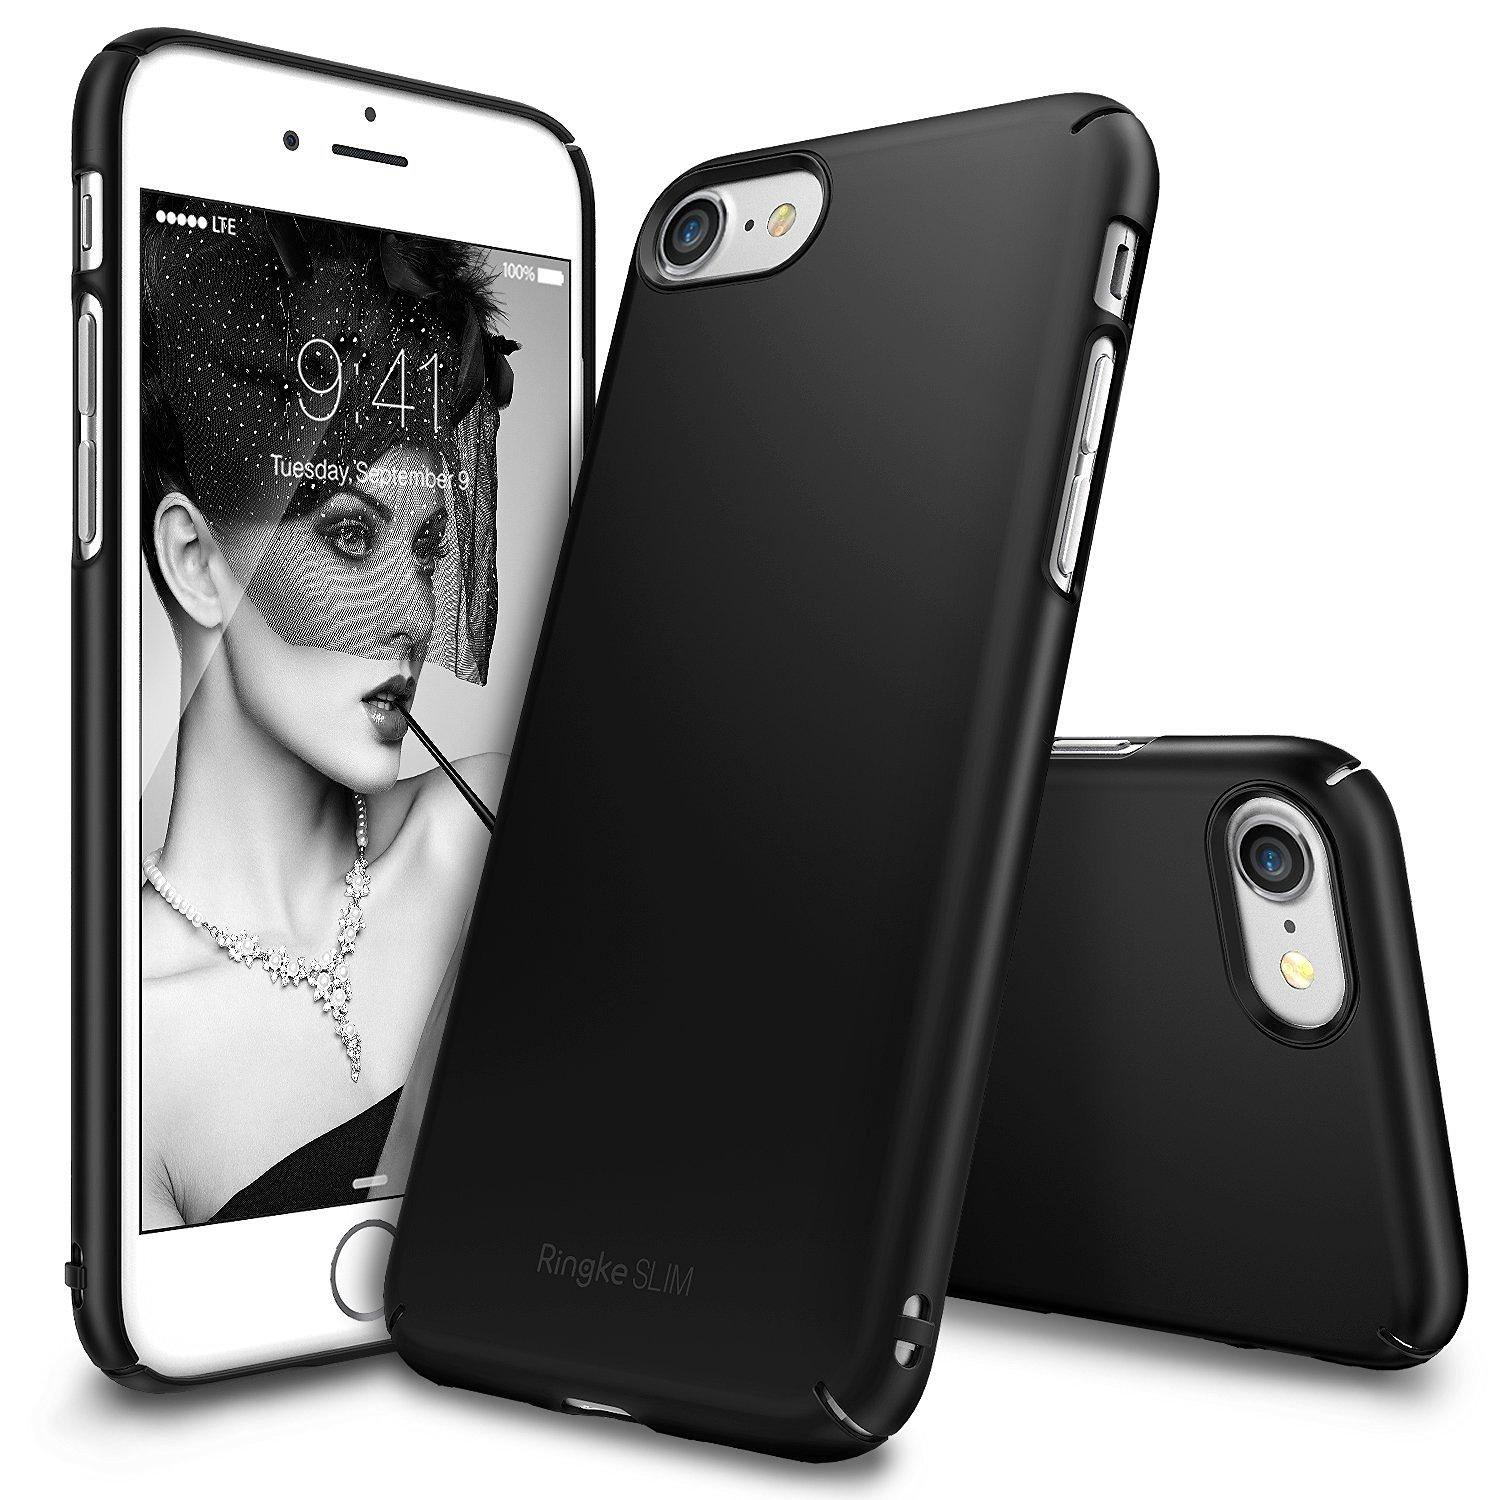 Who Sells Ringke Slim Extremely Thin Lightweight Case For Iphone 7 Iphone 8 Sf Black Cheap